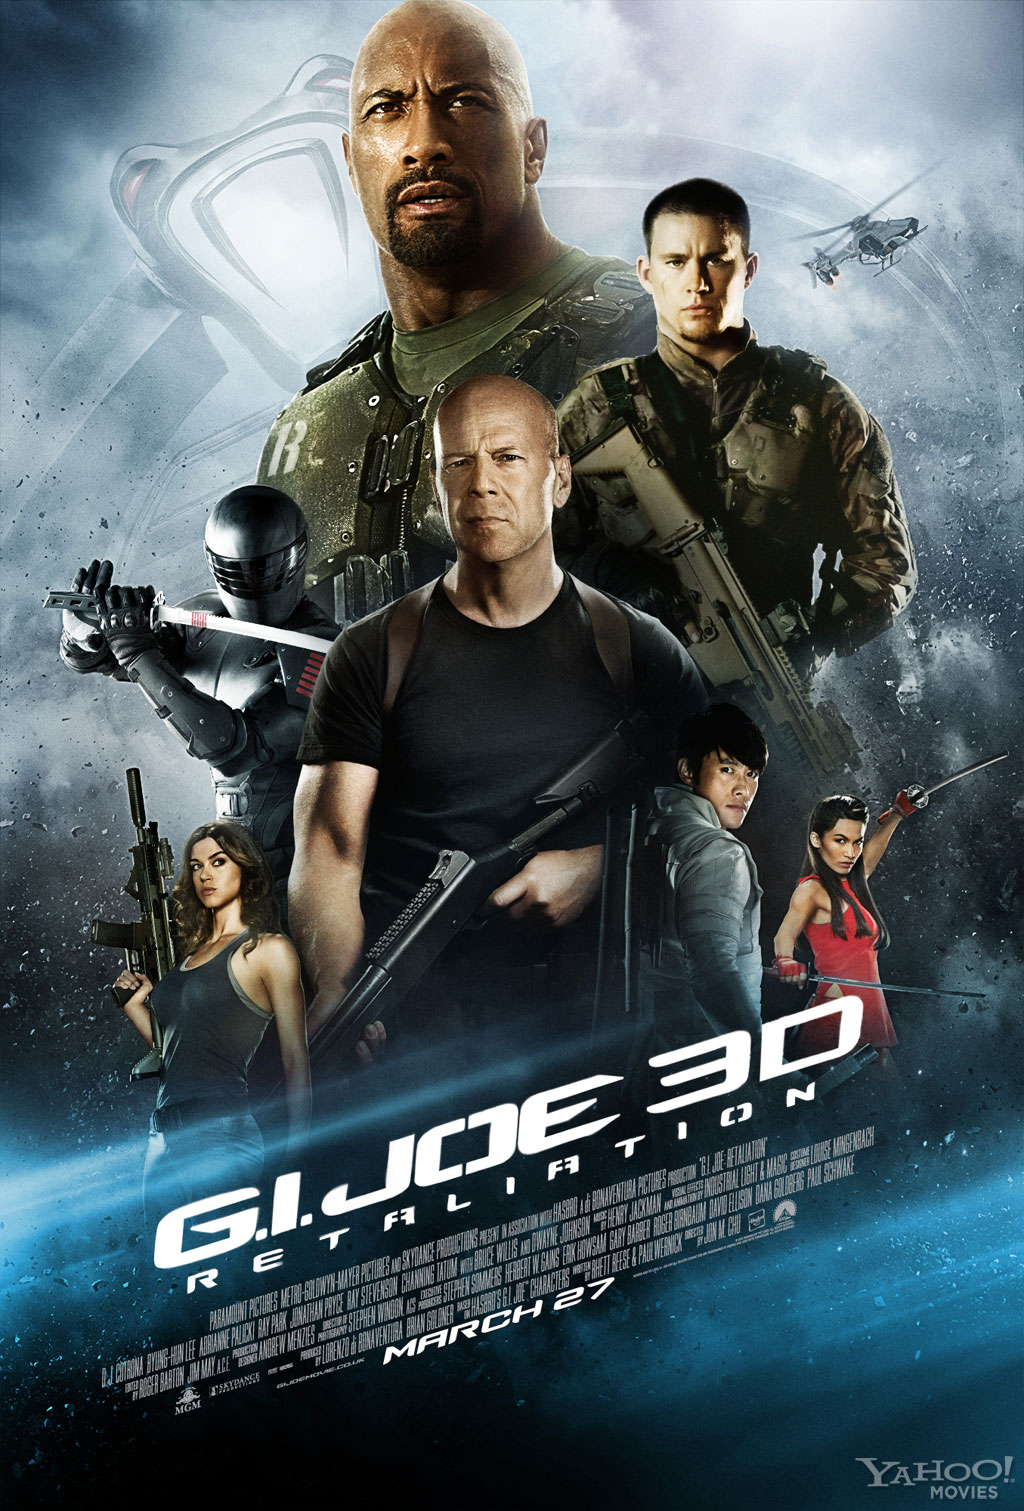 Movie Review: G.I. Joe: Retaliation is a Ton of Messy, Mindless Fun